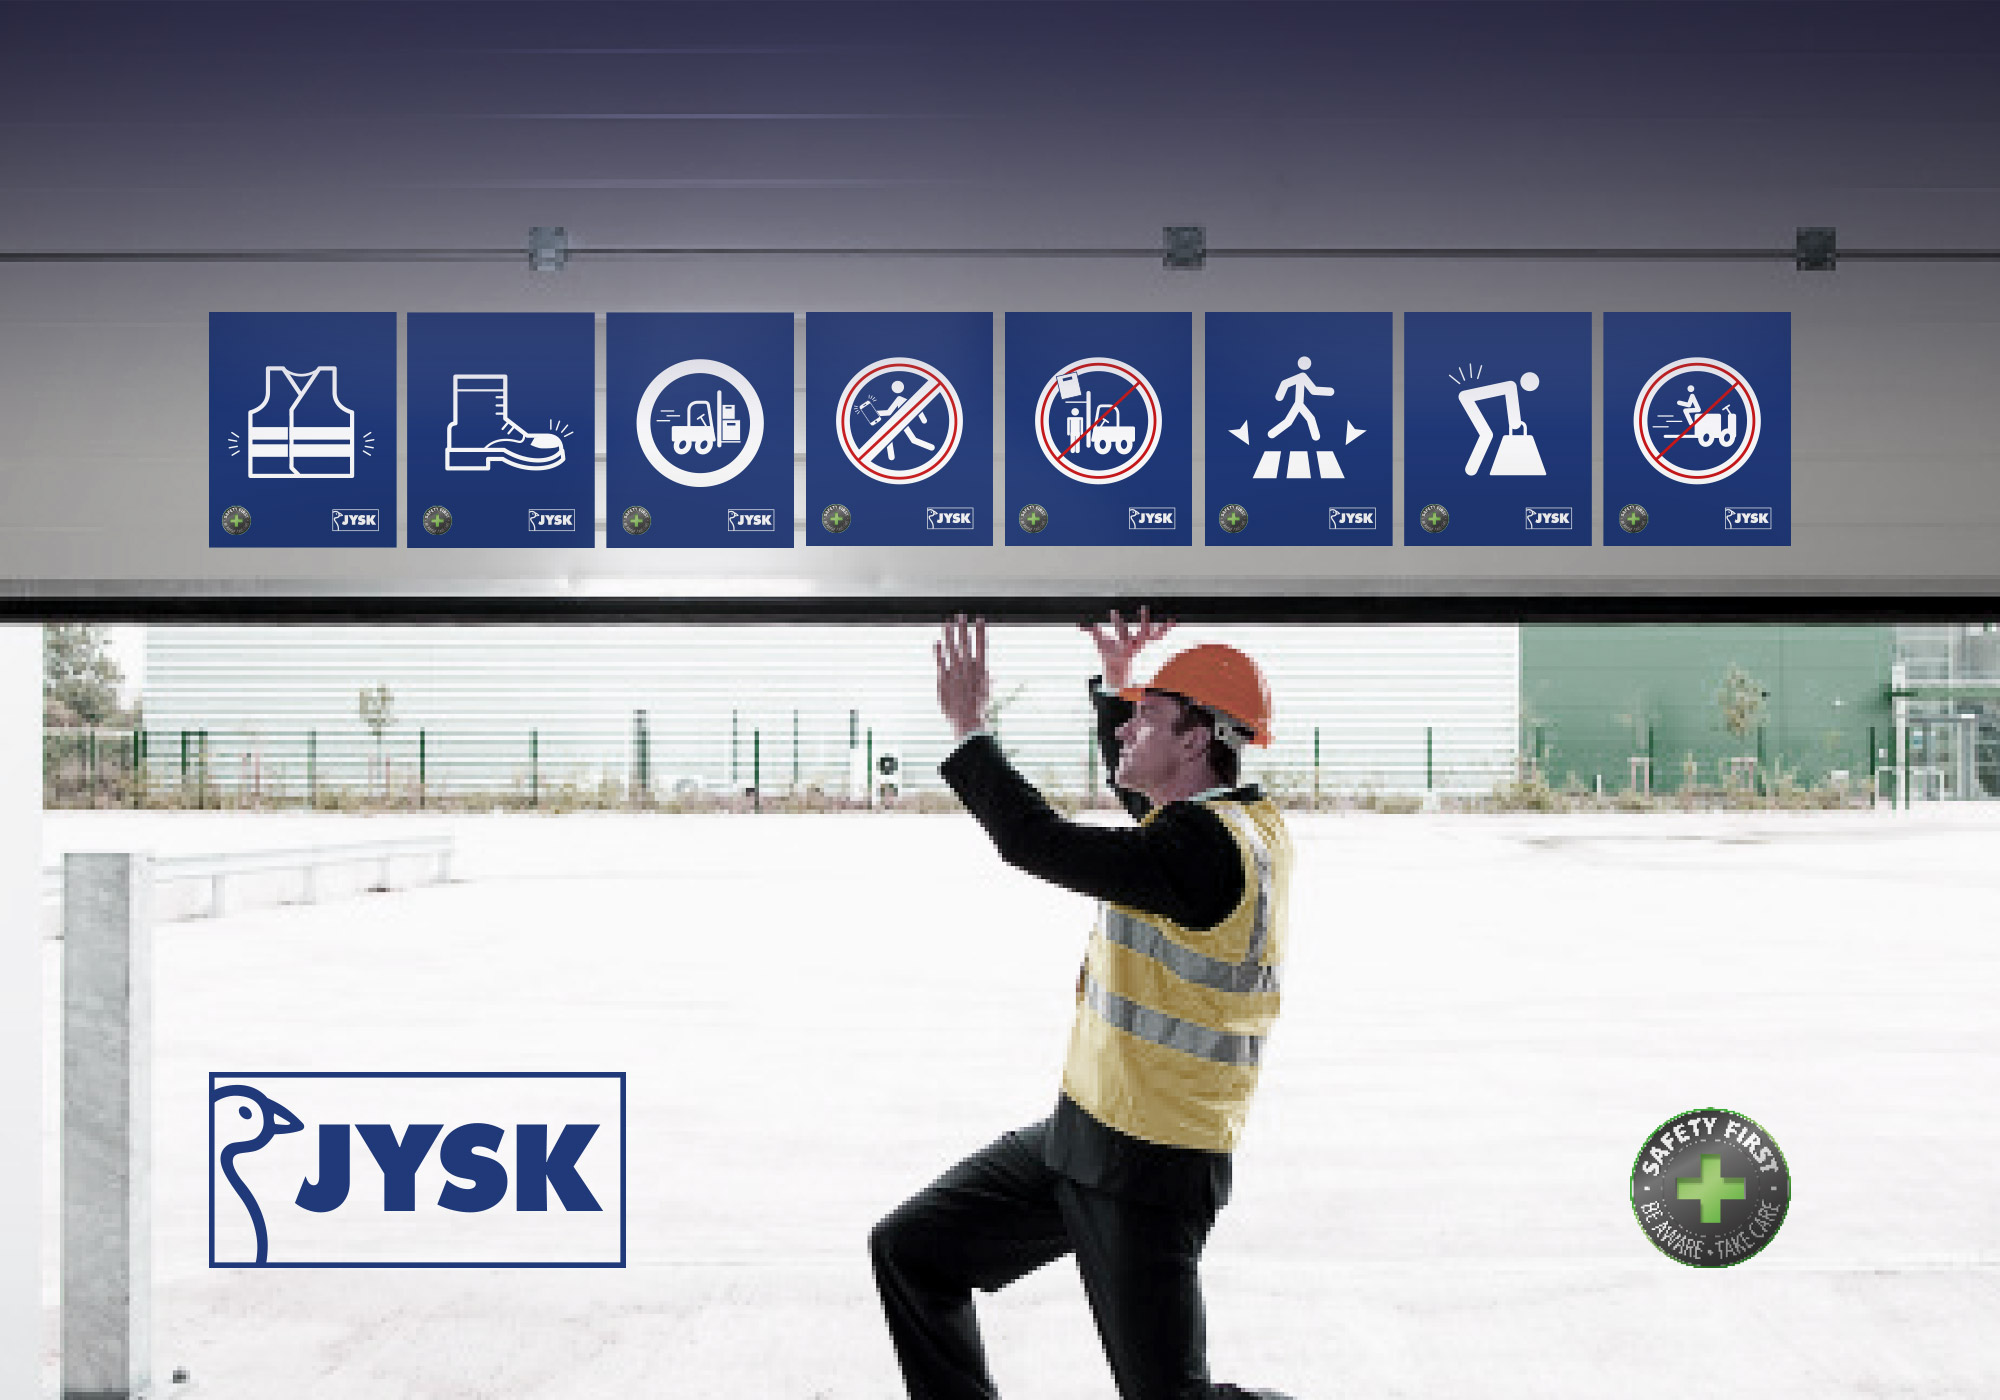 JYSK  (CASE COMING SOON)